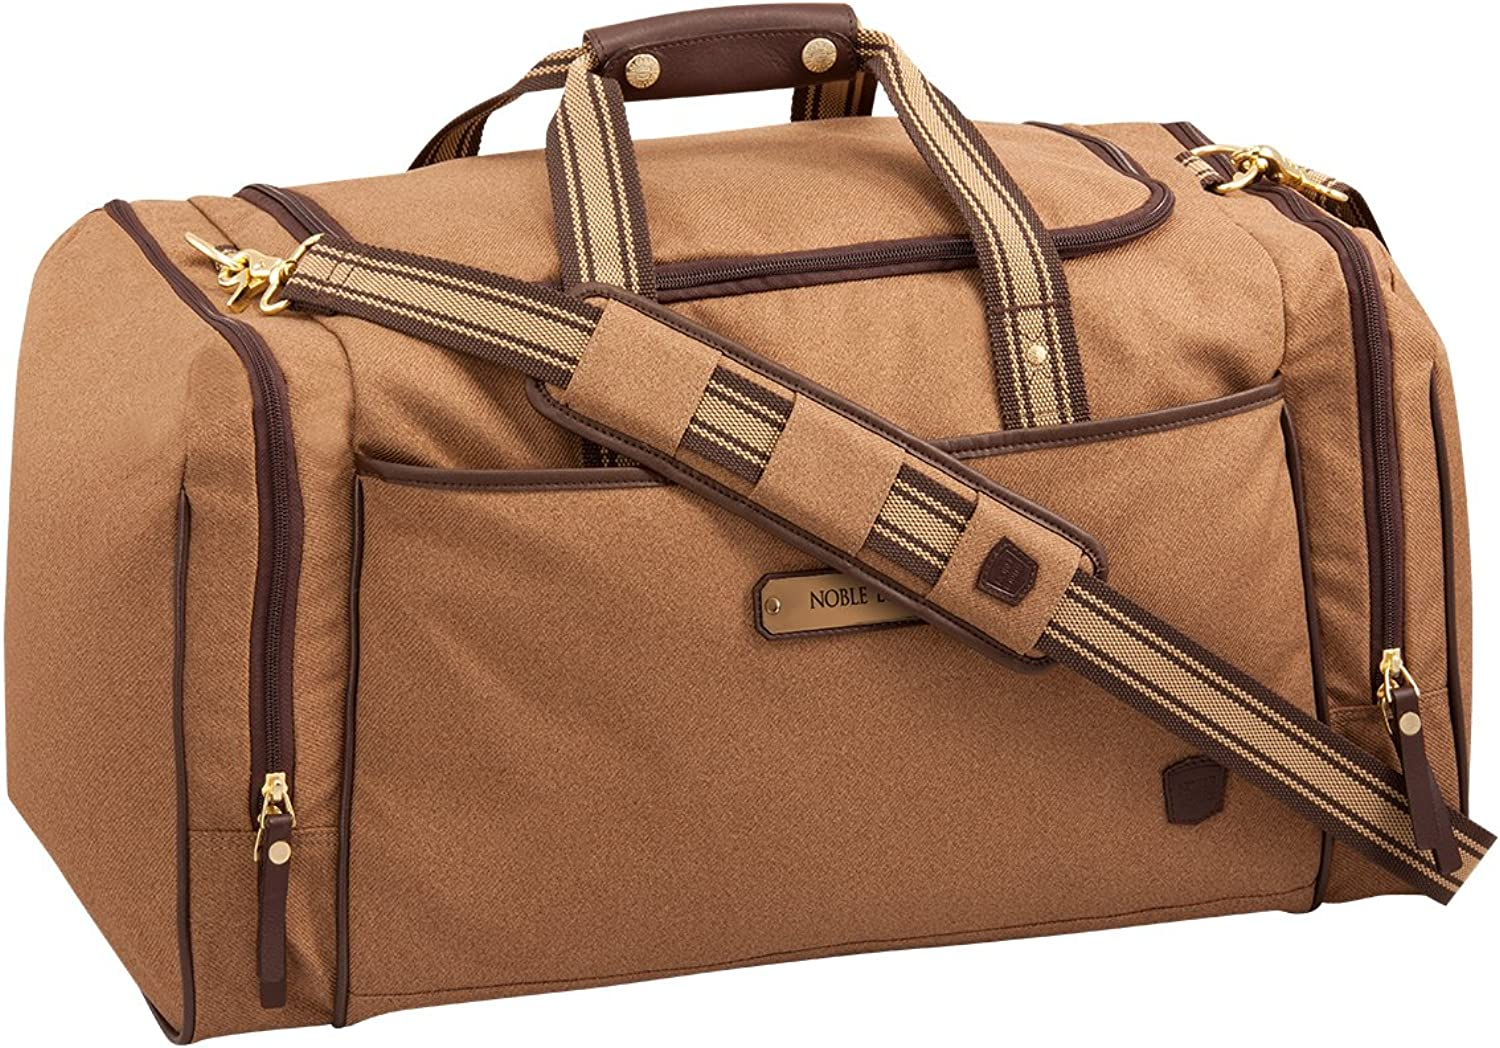 Noble Outfitters Signature Duffle Bag Tobacco One Size